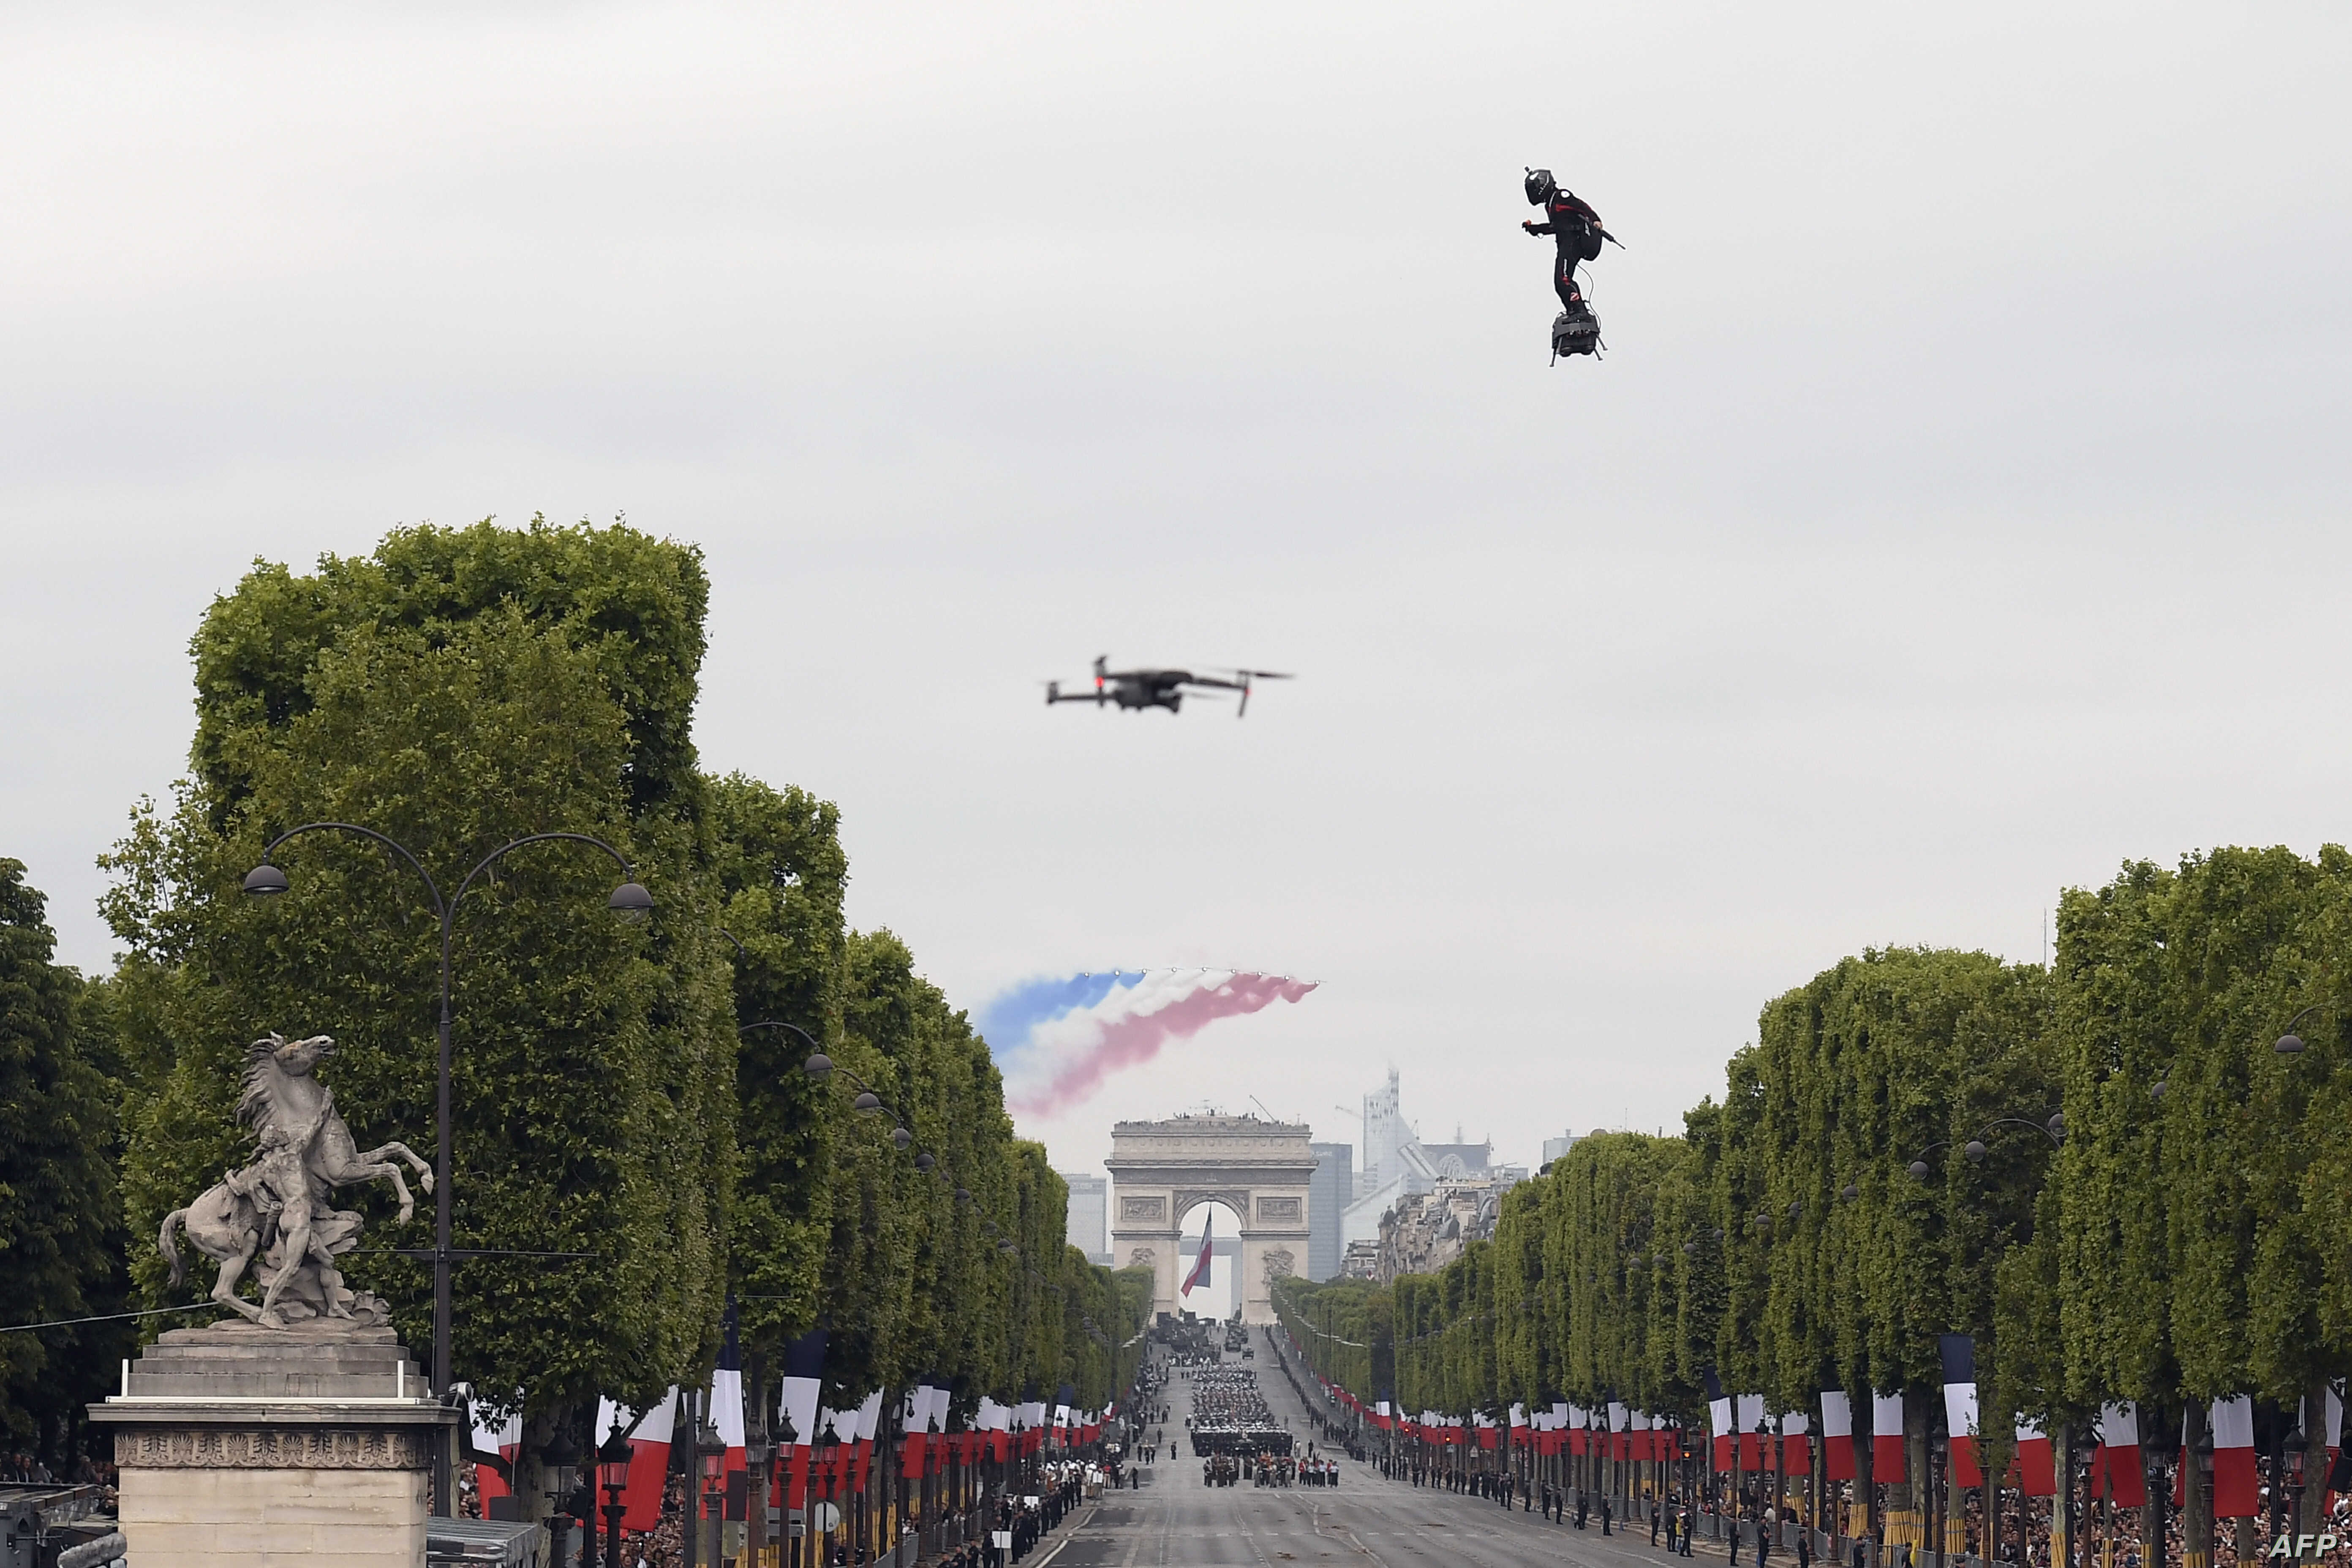 """Zapata CEO Franky Zapata flies a jet-powered hoverboard or """"Flyboard"""" during the Bastille Day military parade down the Champs-Elysees avenue in Paris, France, July 14, 2019."""